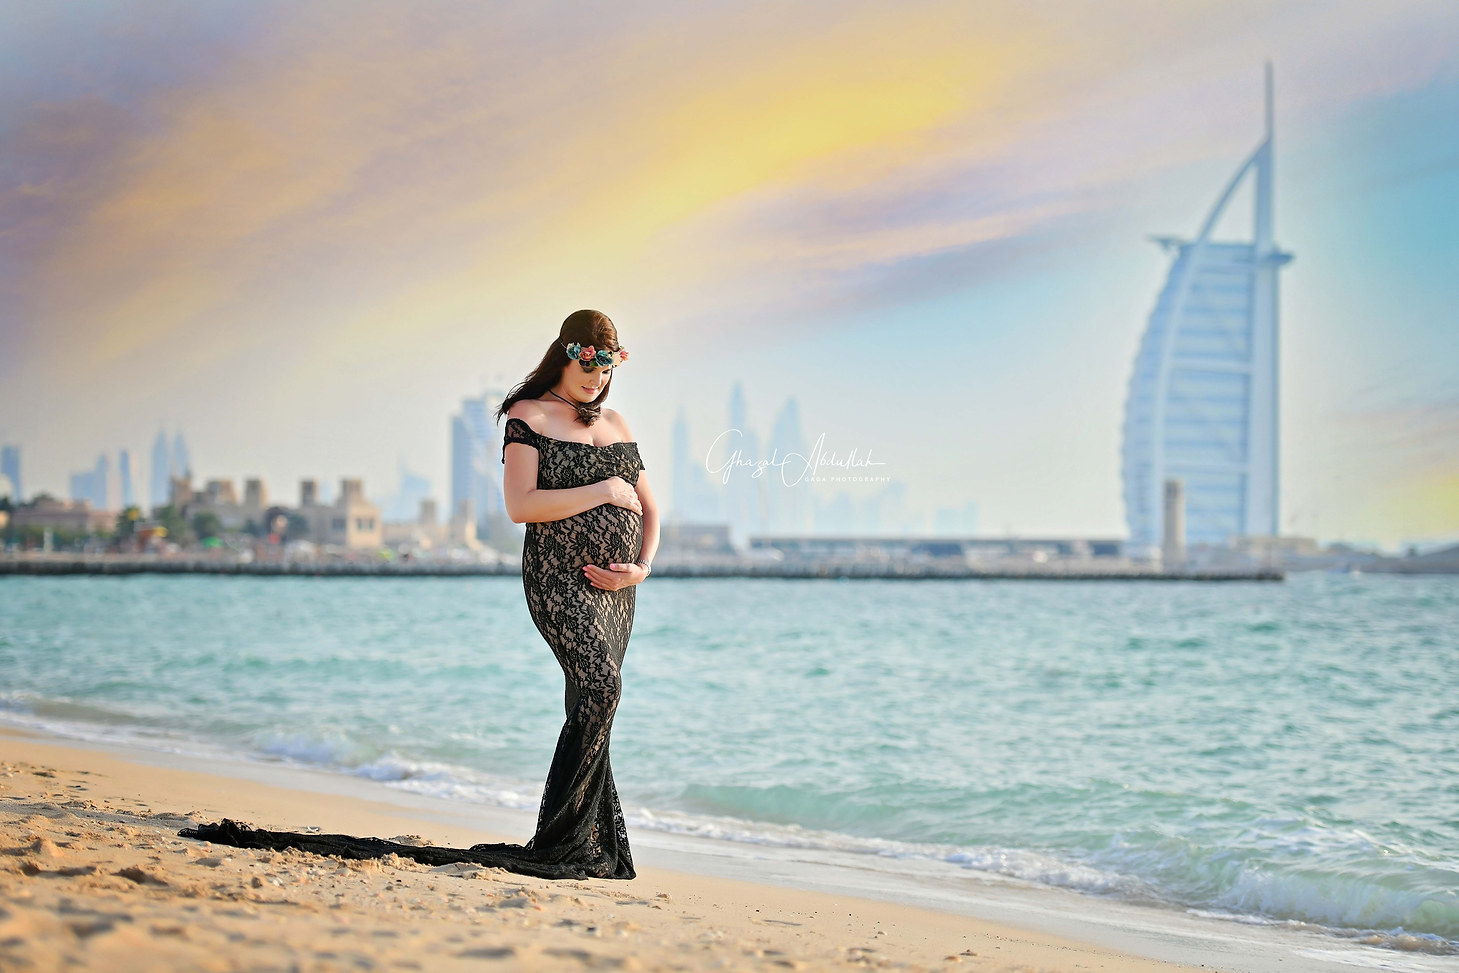 photographer dubai,family grapher dubai,maternity photographer,female photographer dubai, cakesmash photographer dubai, gaga-photography, cake smash dubai